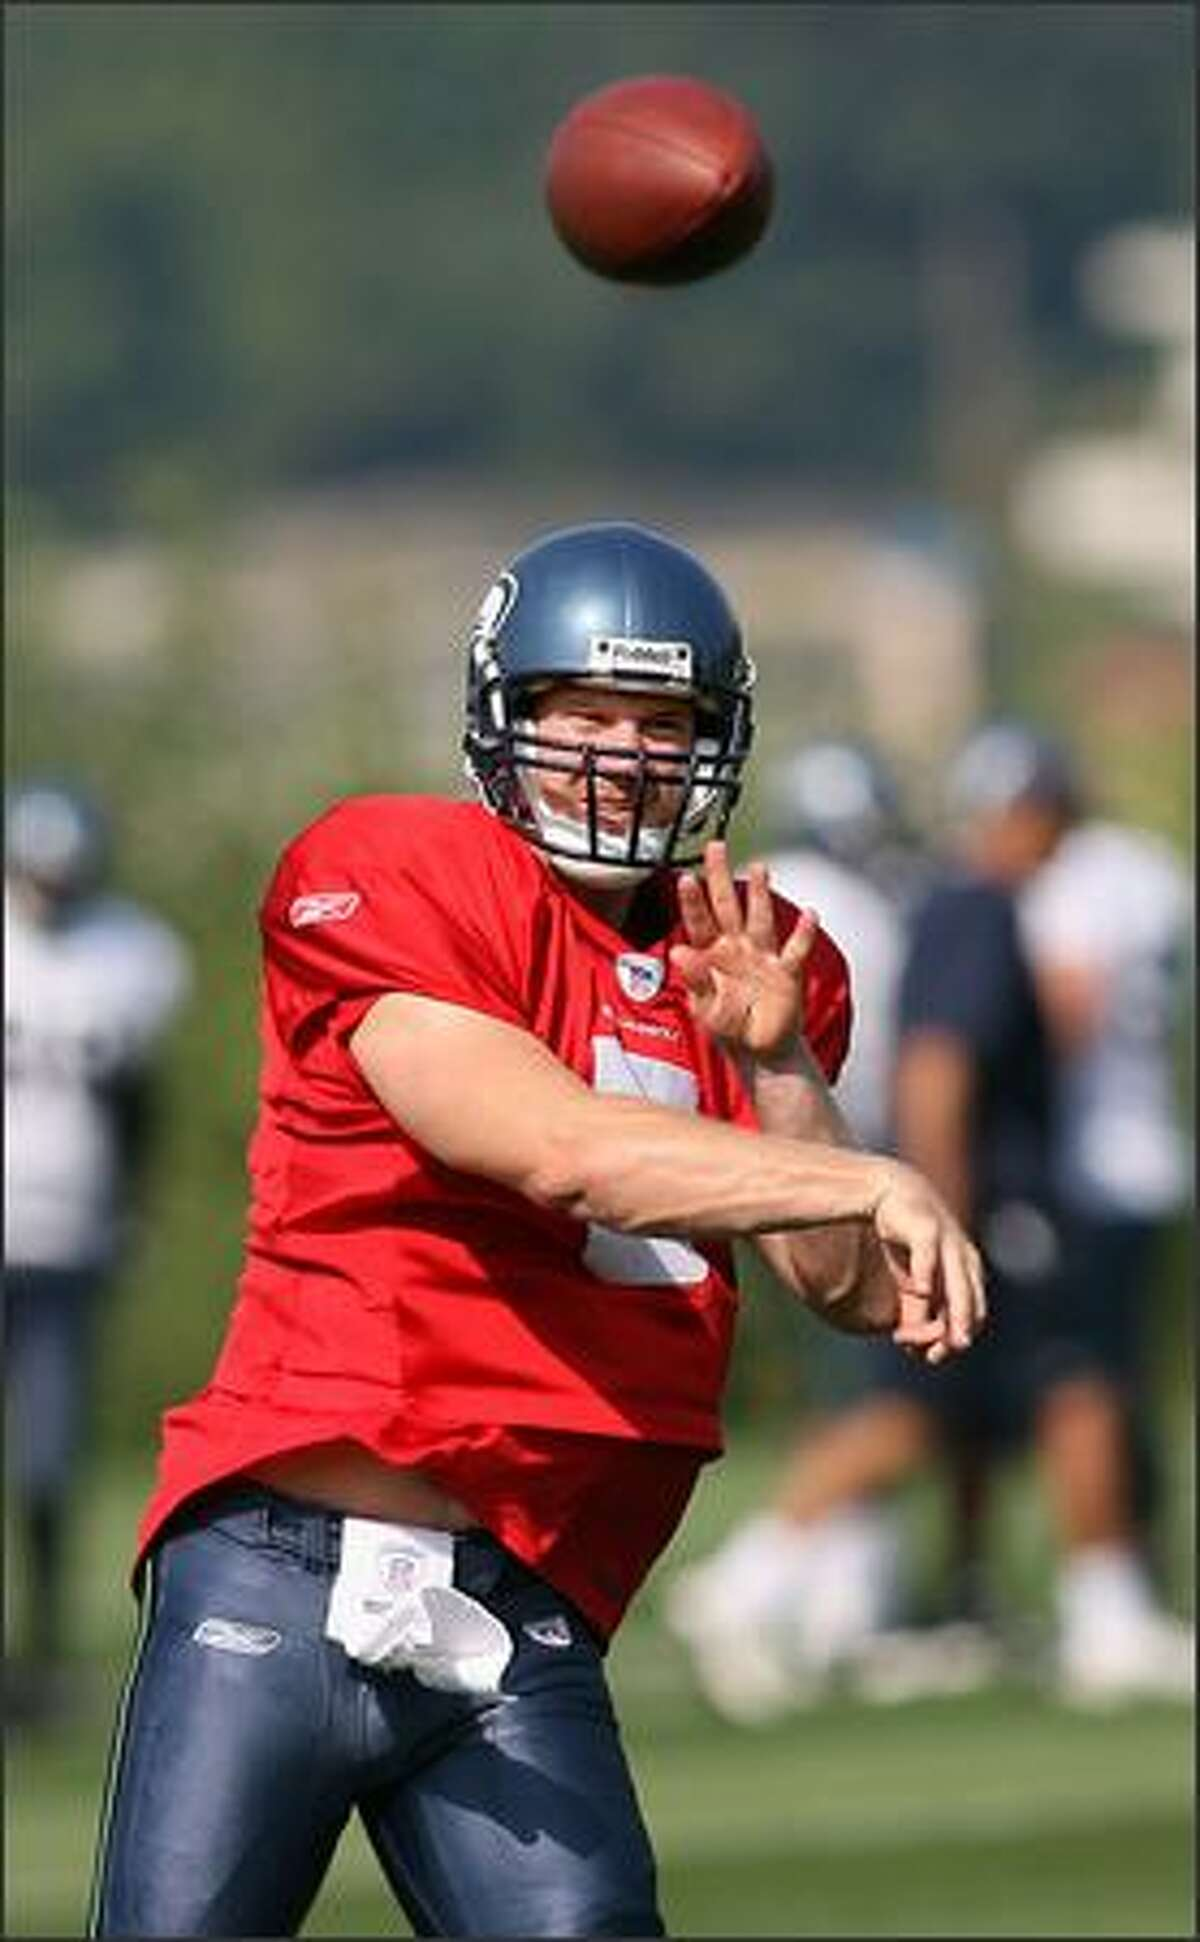 Backup quarterback Charlie Fry fires a pass as the Seahawks hold their first practice at their new practice facility.